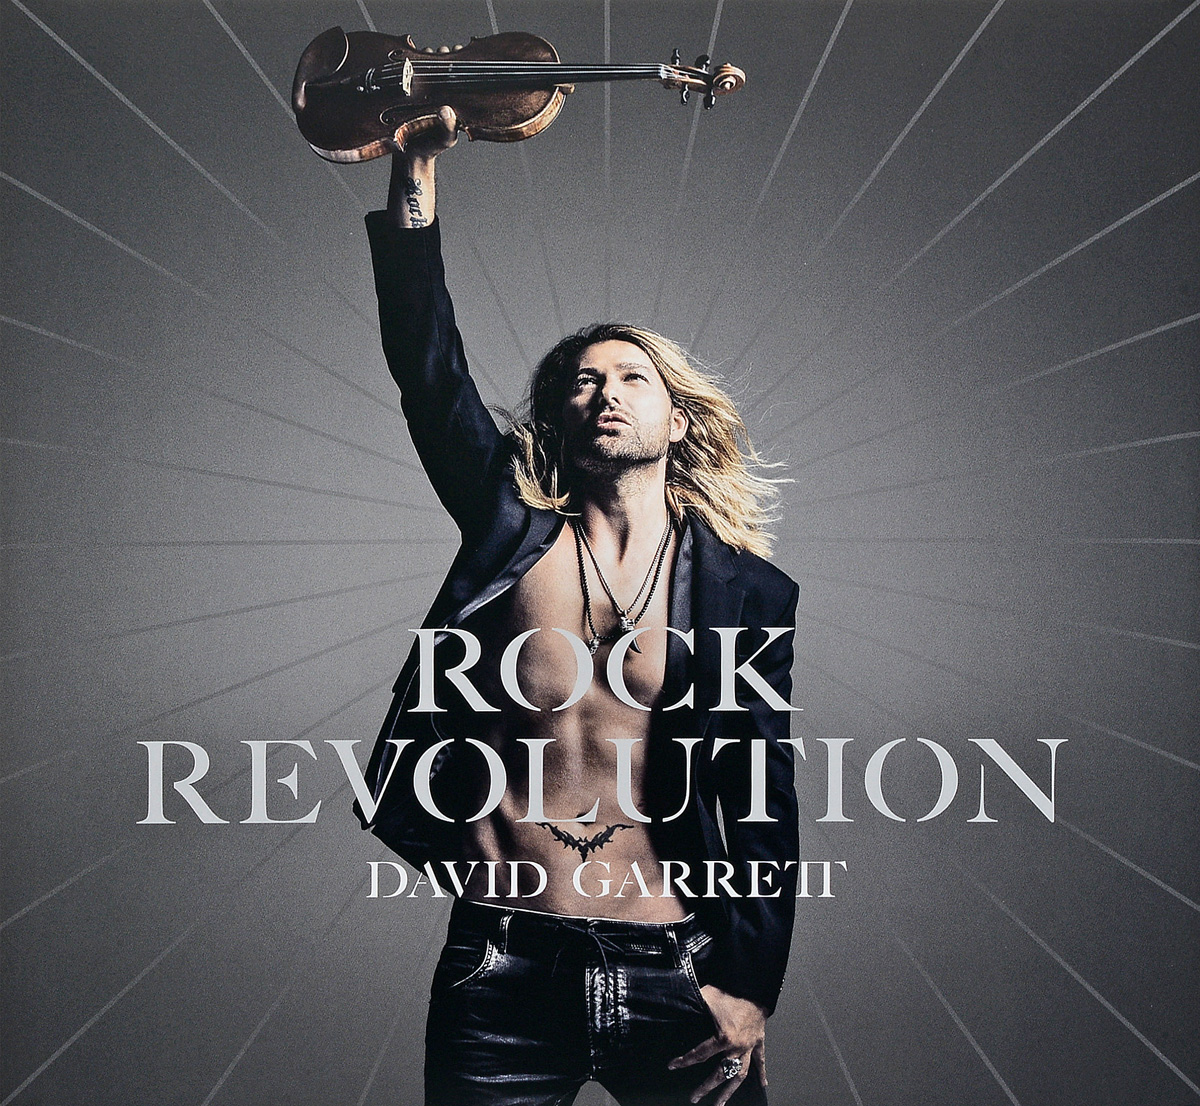 Дэвид Гарретт David Garrett. Rock Revolution (2 LP) juyang scale waveii metal spoon fishing lure gold silver 5g 10g 15g 20g